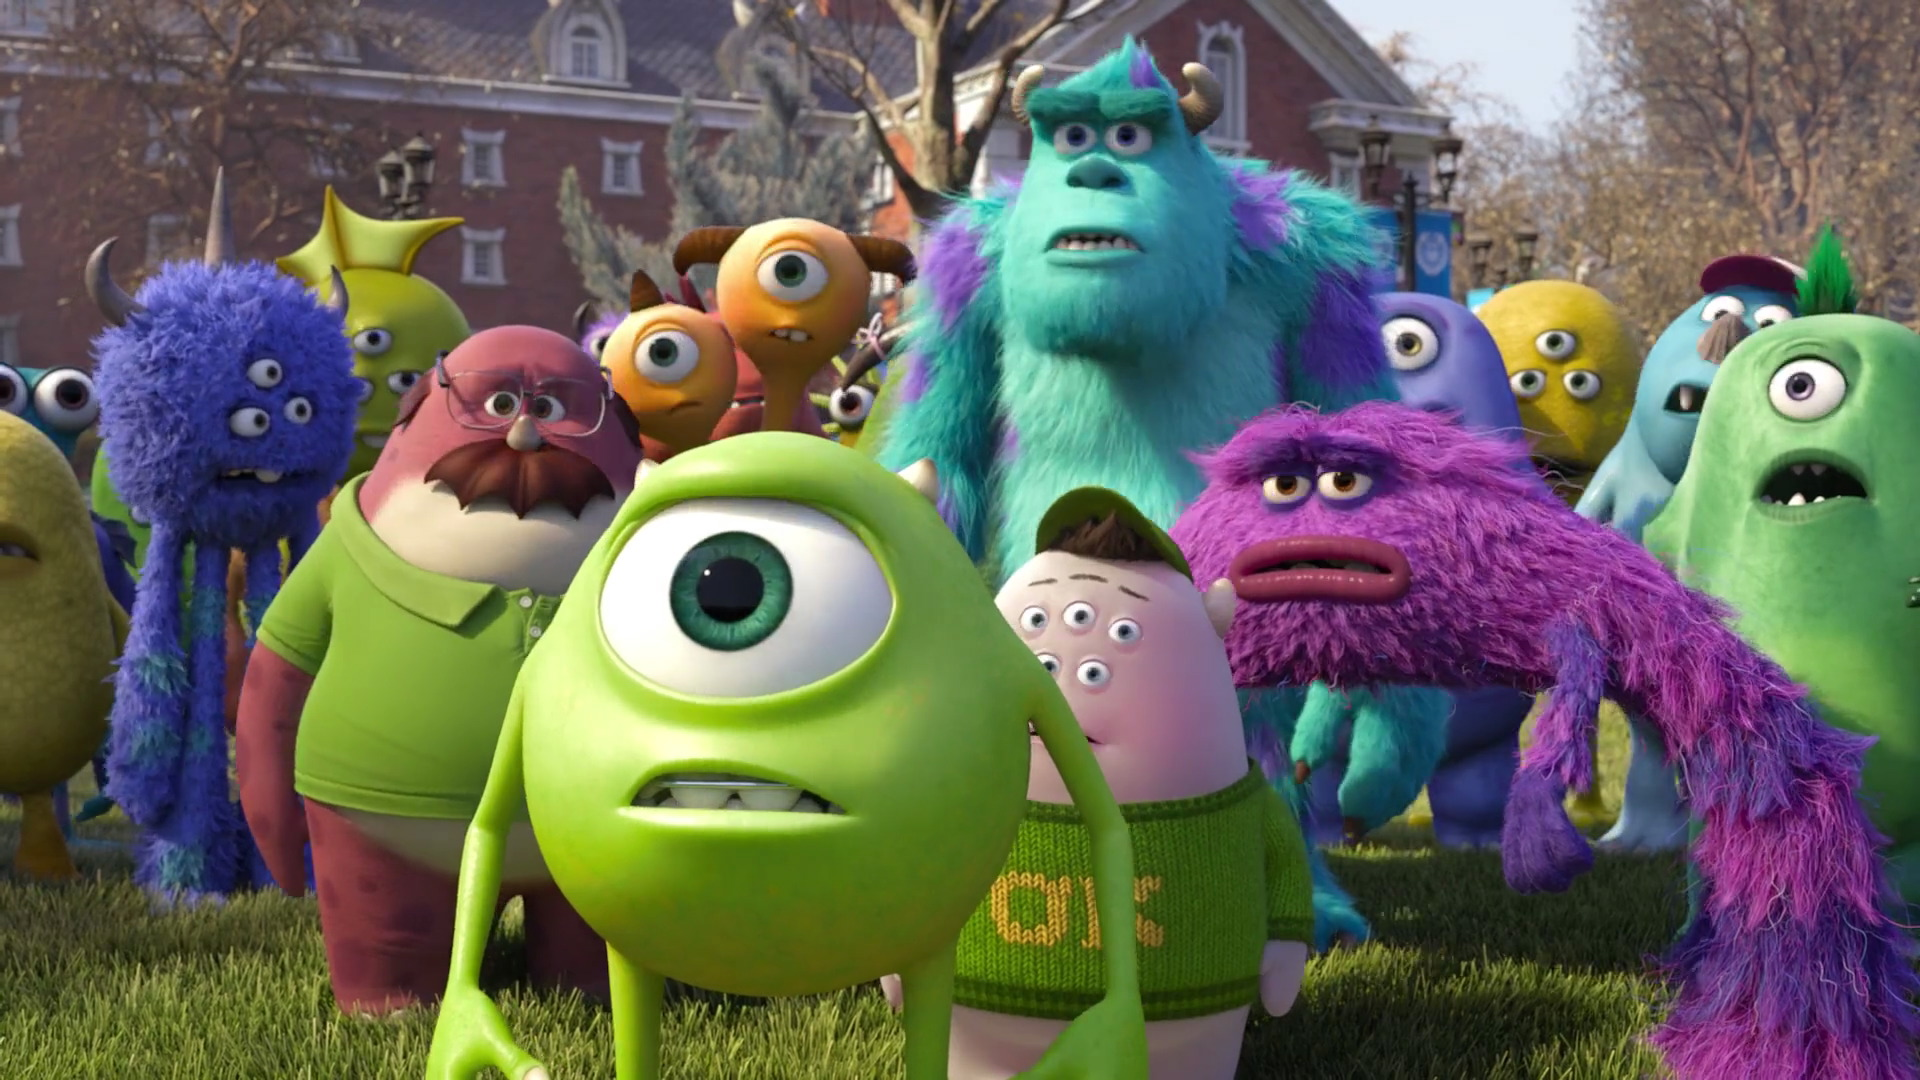 image monsters university disneyscreencaps com 6656 jpg disney